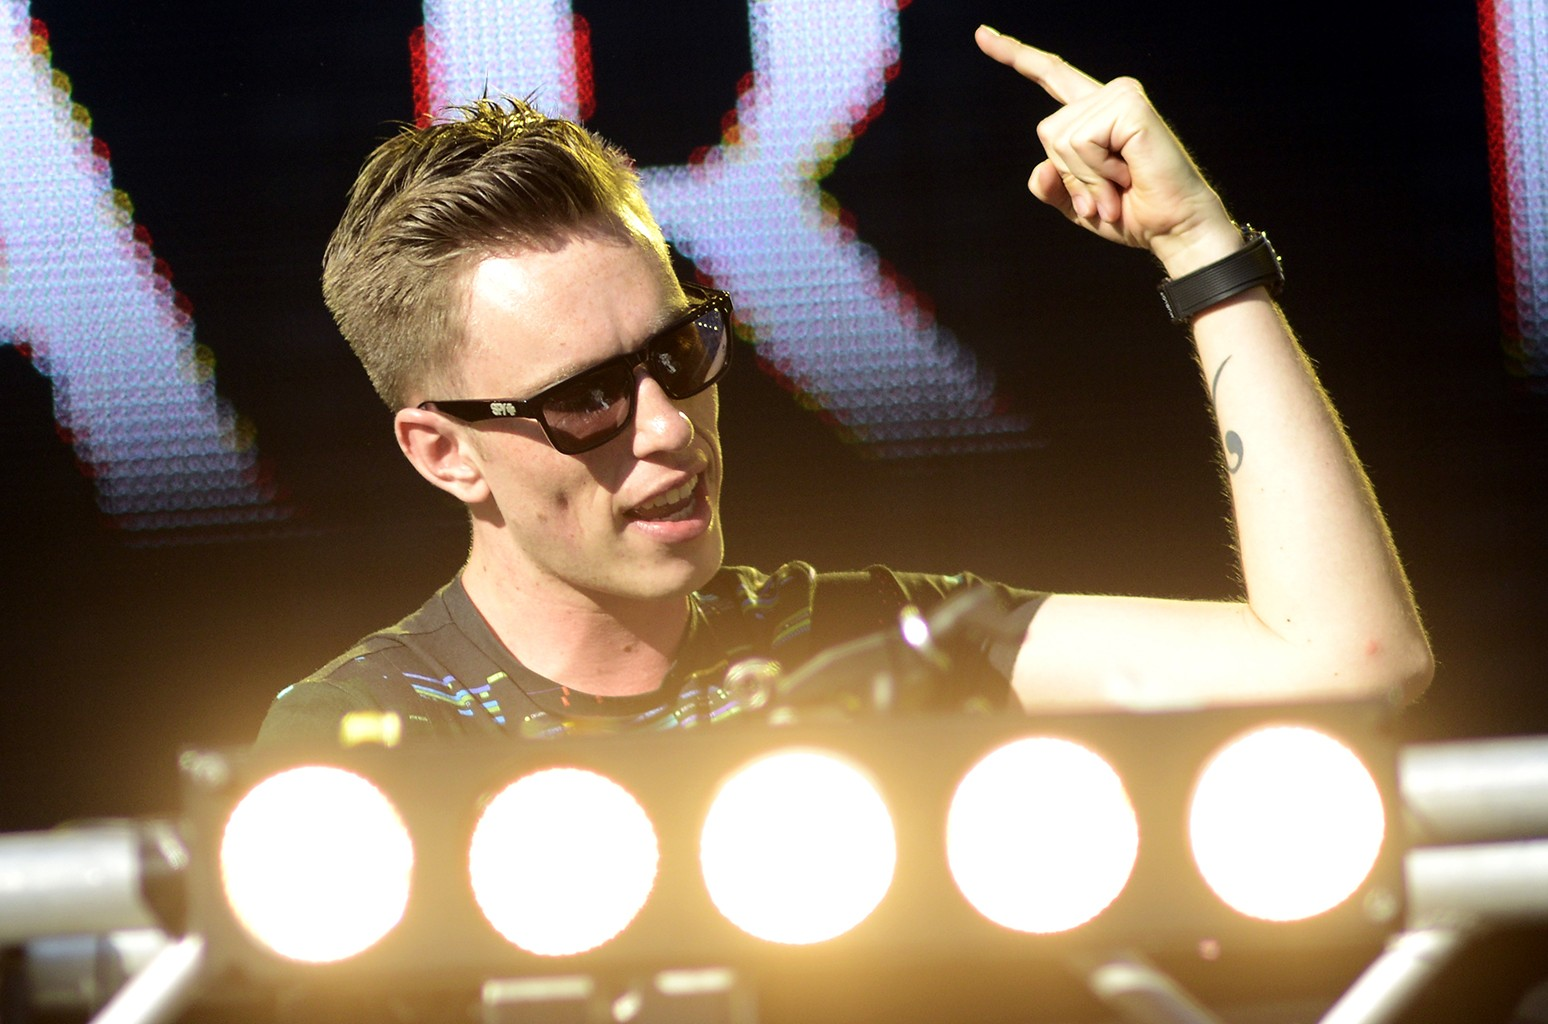 Nicky Romero performs in 2015